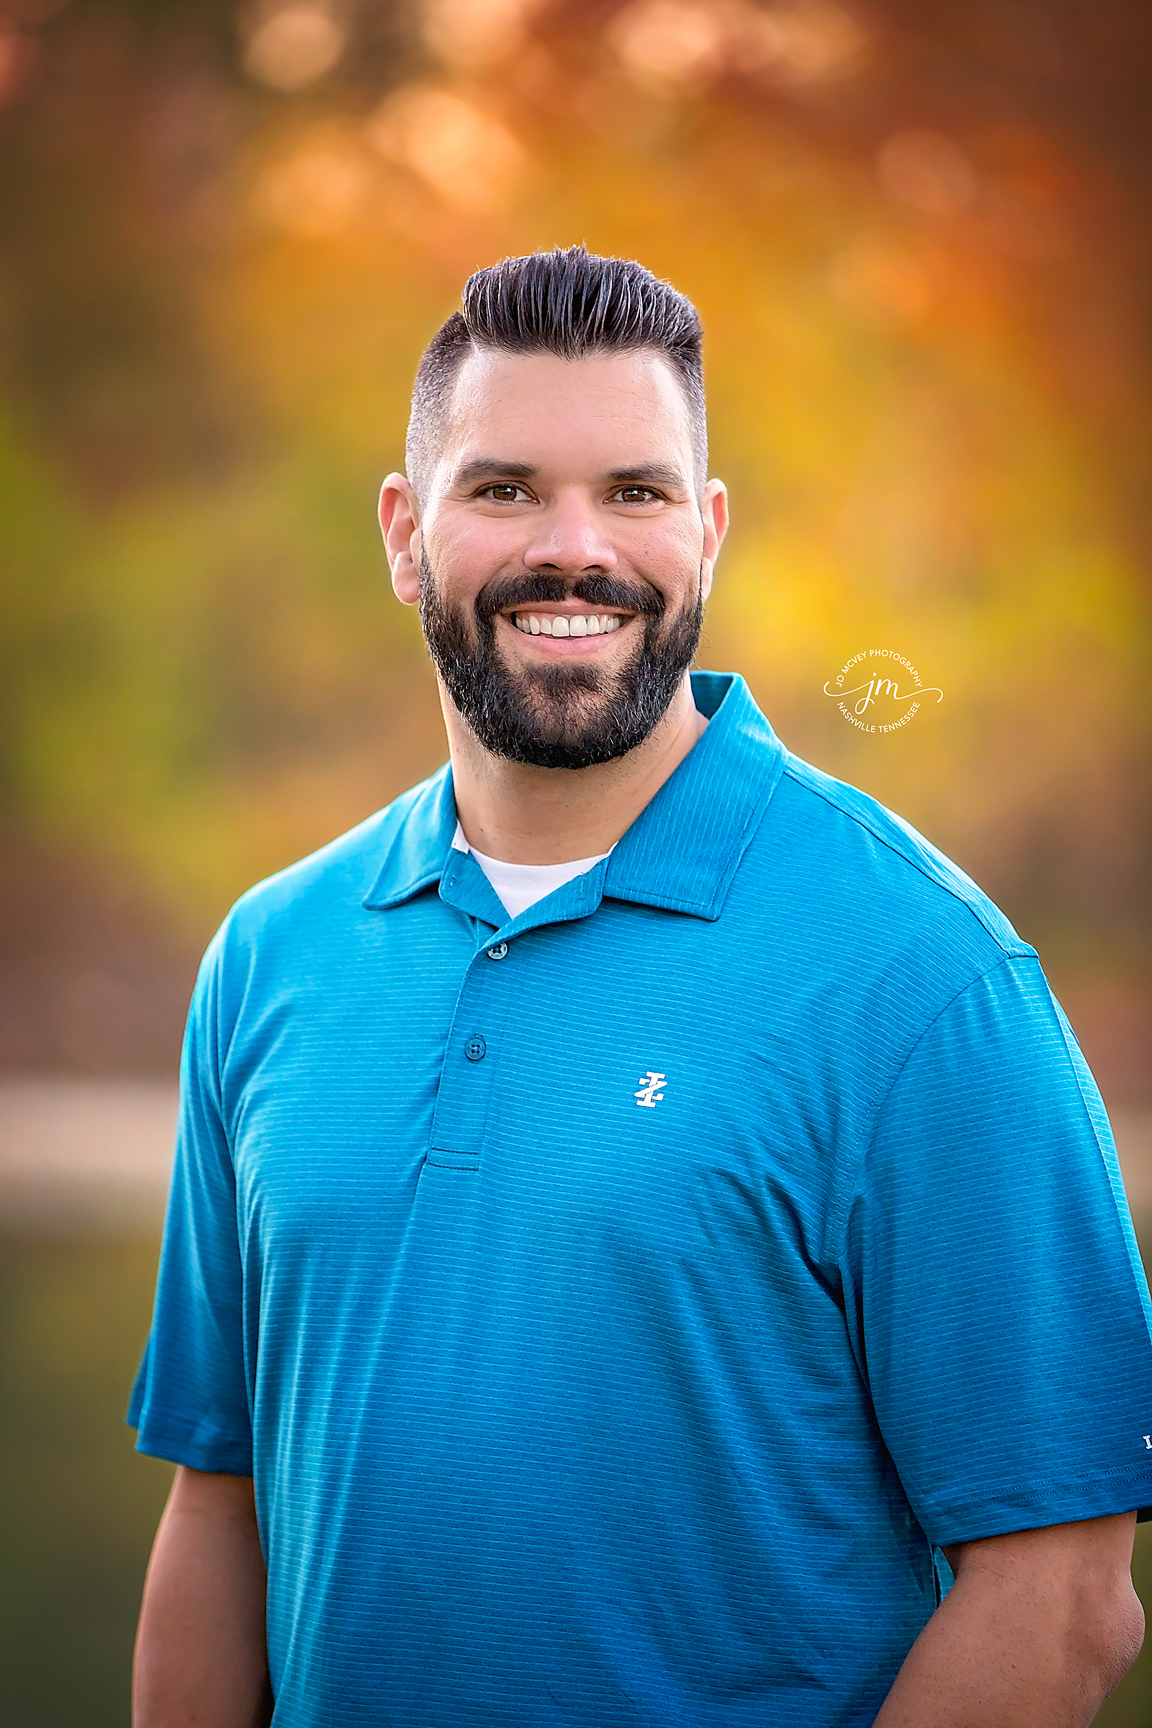 Fall Male Headshot - Nashville Portrait Photographer | Jo McVey Photography